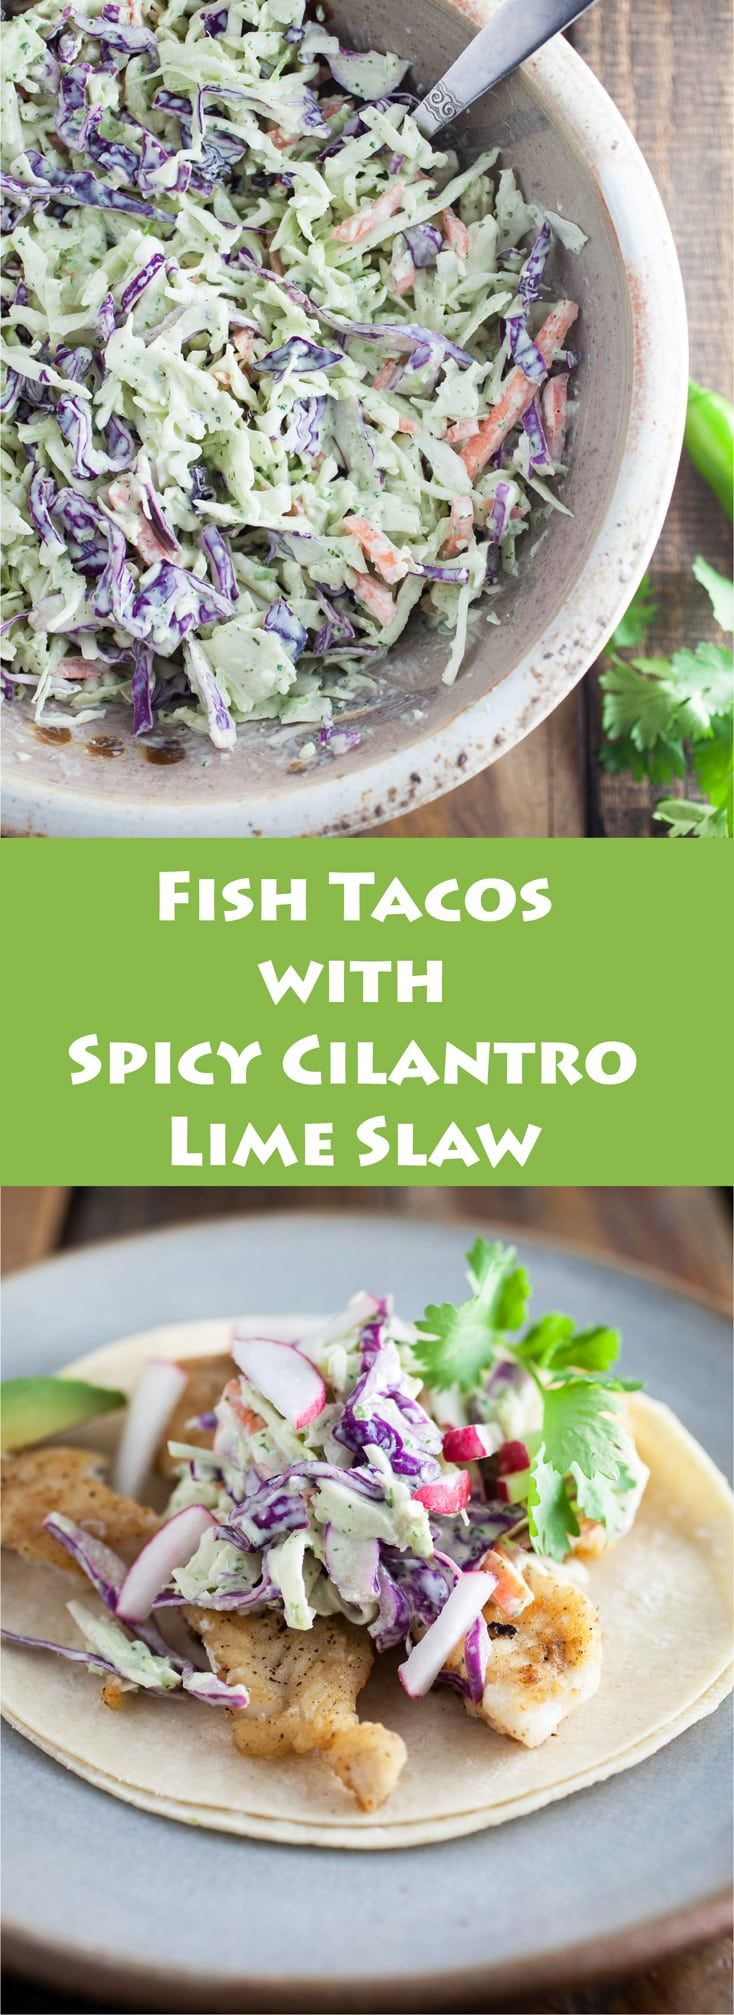 Fish-Tacos-with-Spicy-Cilantro-Lime-Slaw